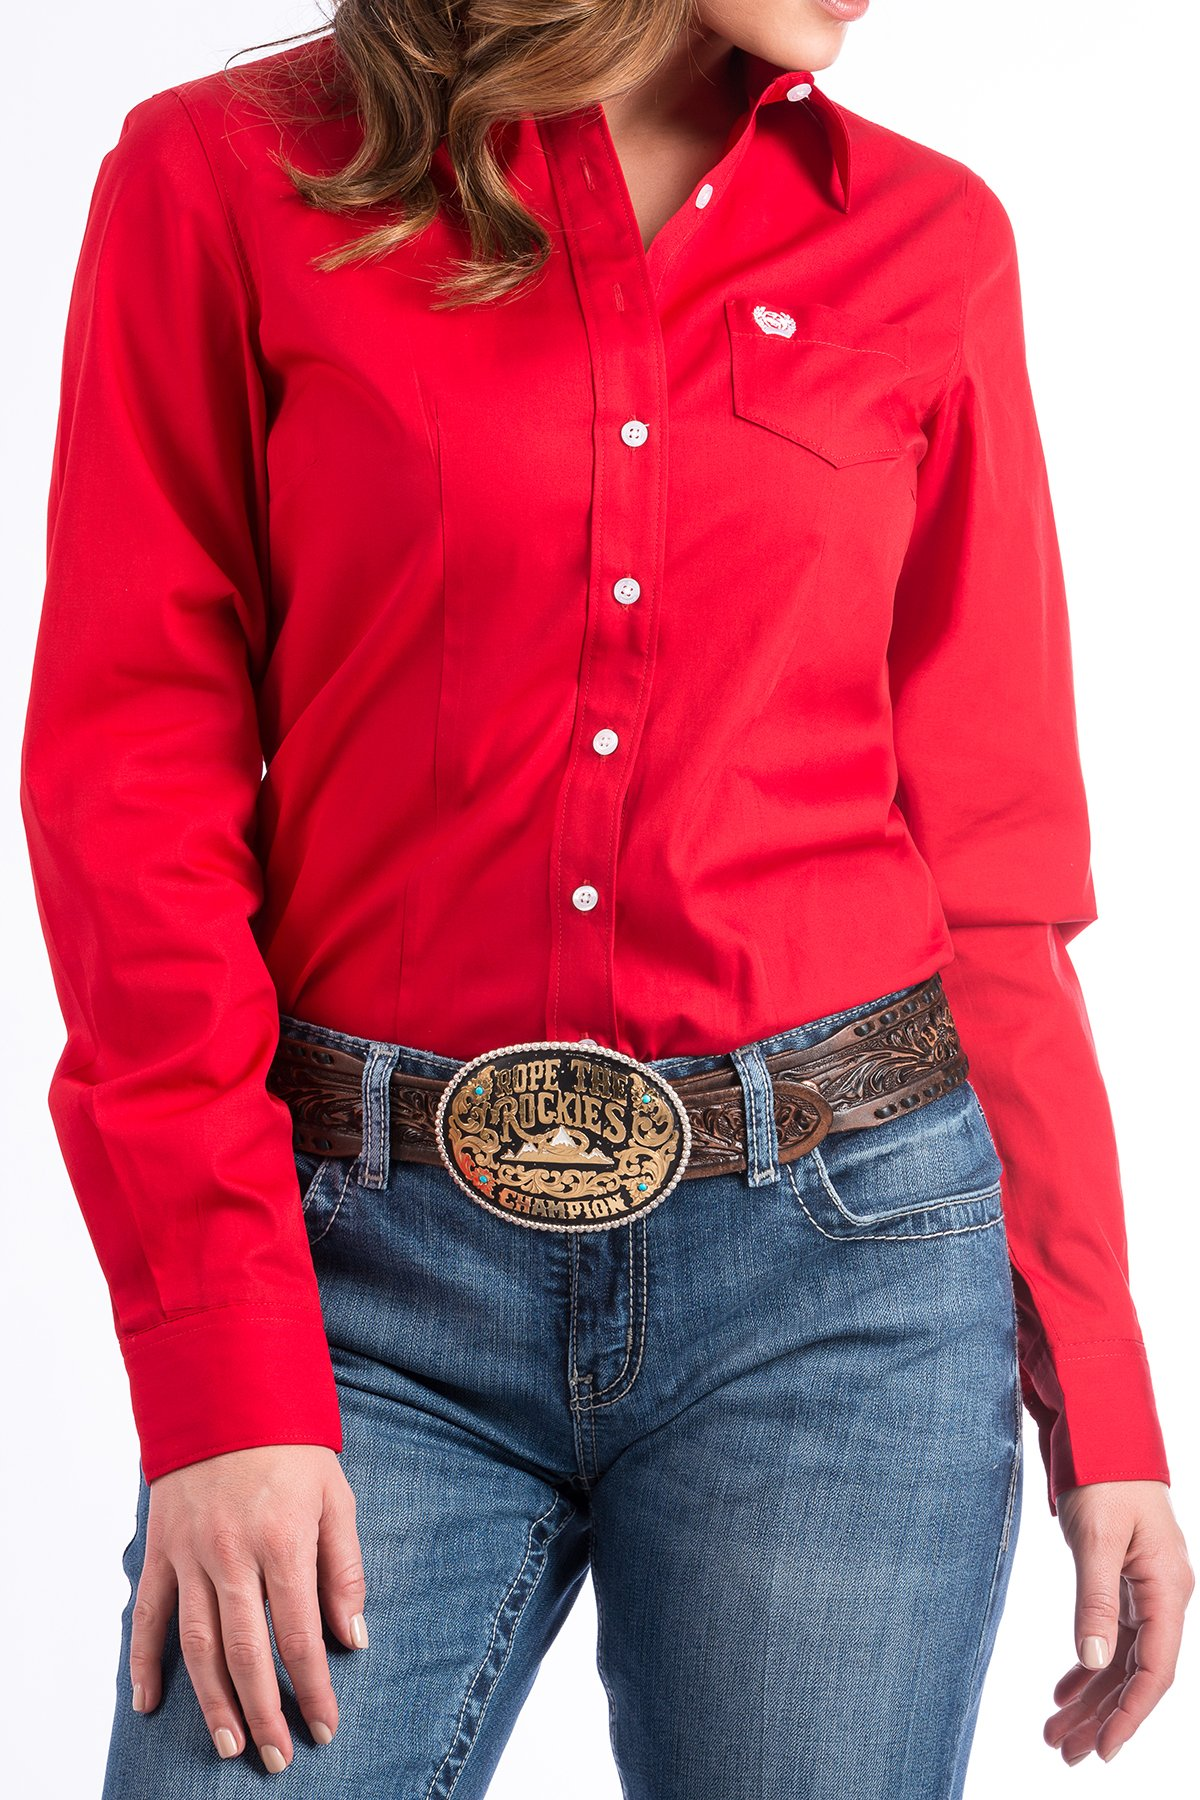 chemise-western-femme-rouge-cinch-solid